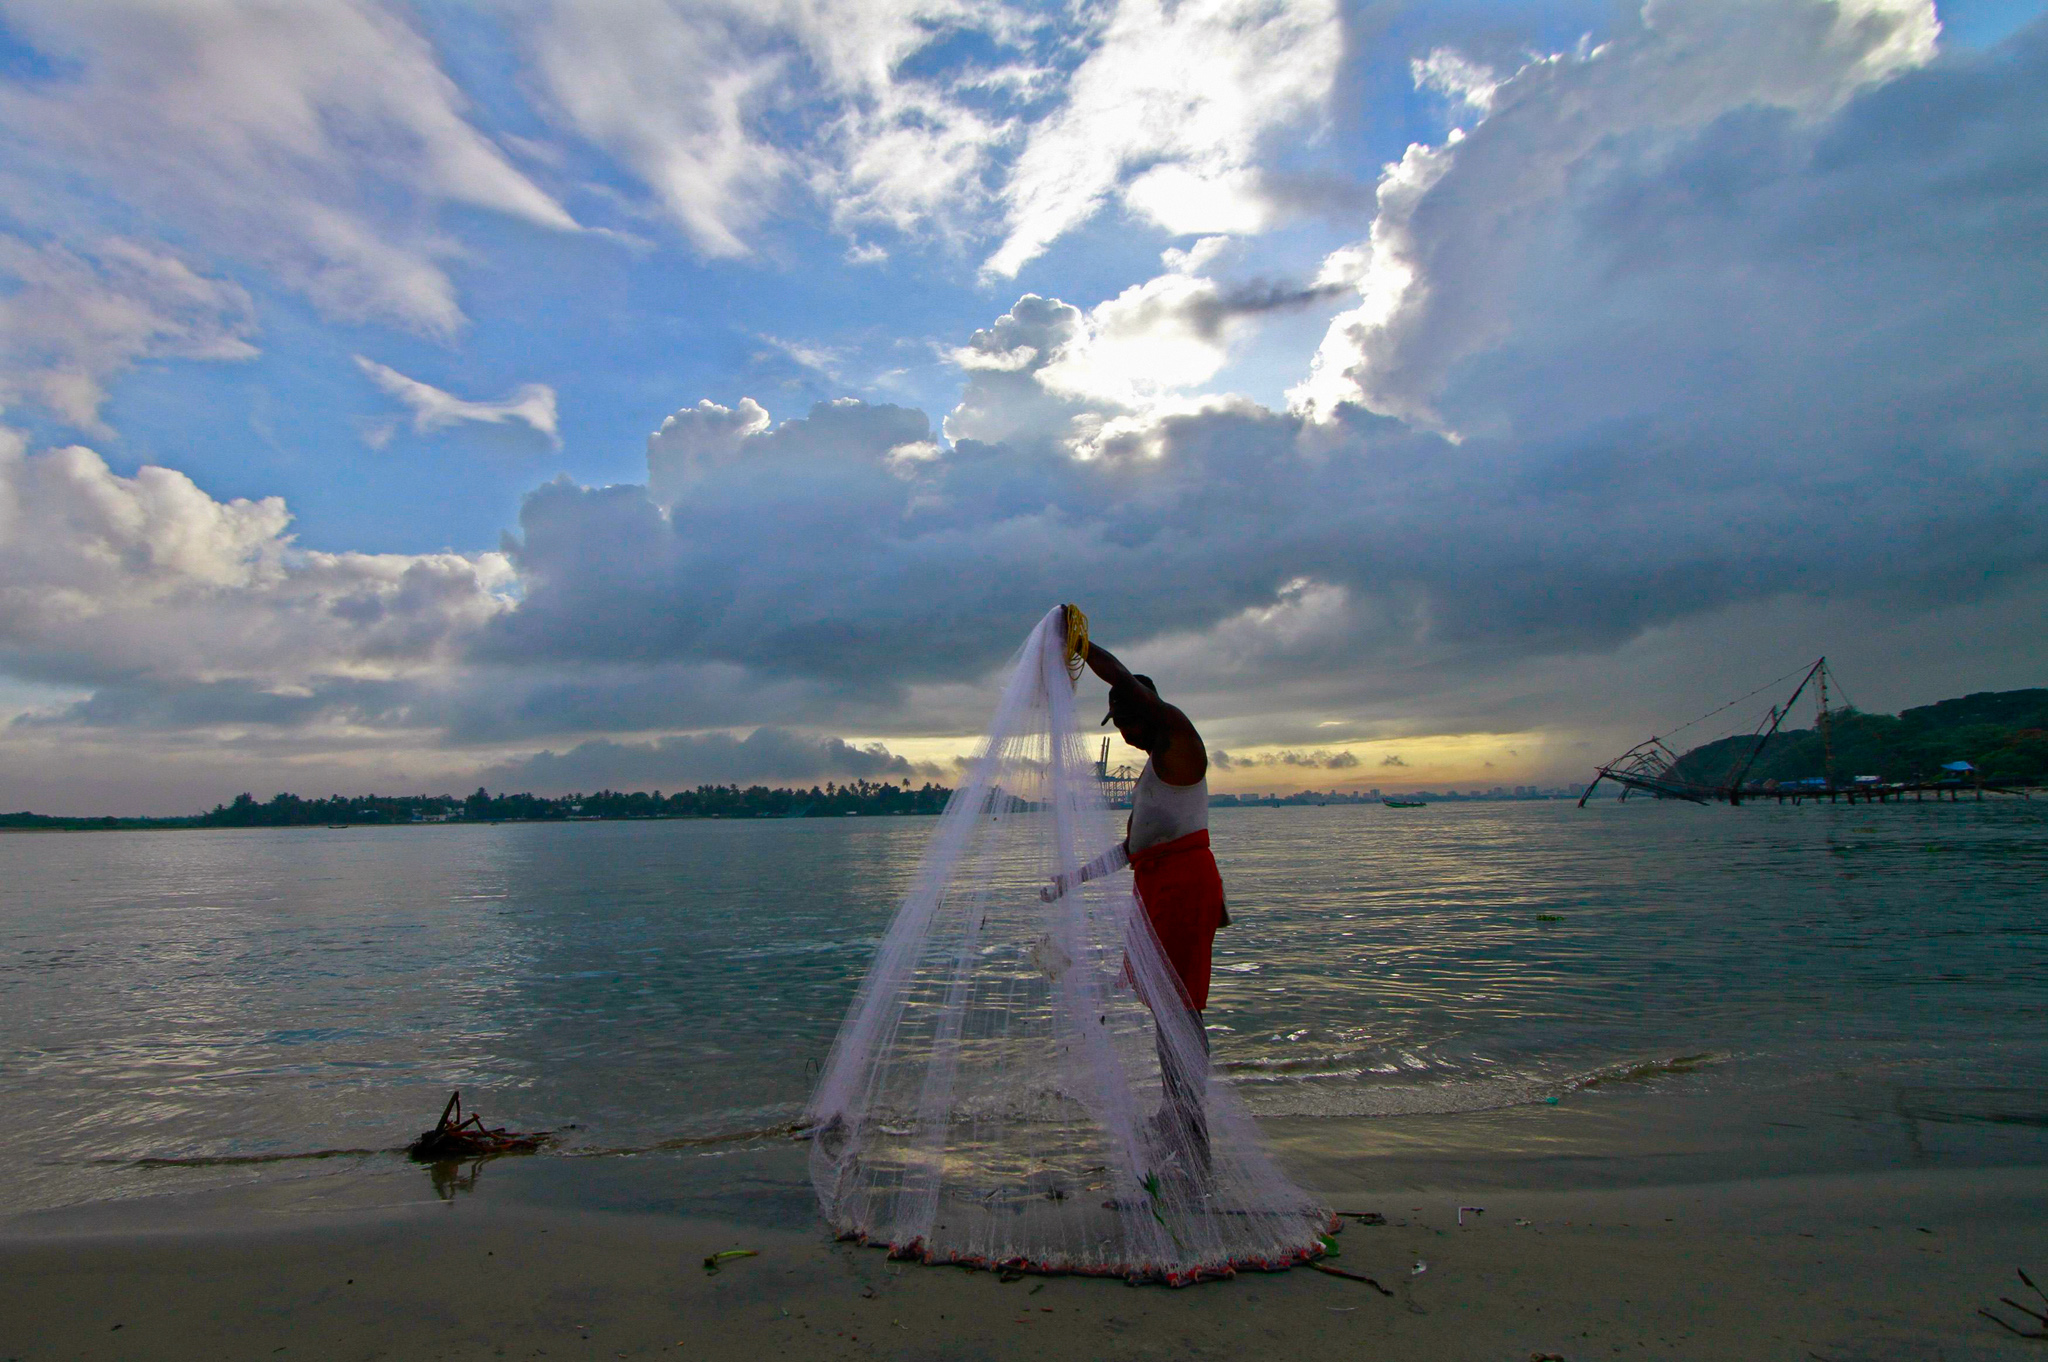 A fisherman arranges his fishing net at a beach against the backdrop of pre-monsoon clouds in Kochi...A fisherman arranges his fishing net at a beach against the backdrop of pre-monsoon clouds in the southern Indian city of Kochi June 5, 2014. India's southern coast could witness the arrival of this year's monsoon in the next day or so after sporadic rains in recent days heralded the arrival of the wet season that is crucial to farmers in Asia's third-largest economy. REUTERS/Sivaram V. (INDIA - Tags: AGRICULTURE ENVIRONMENT BUSINESS)